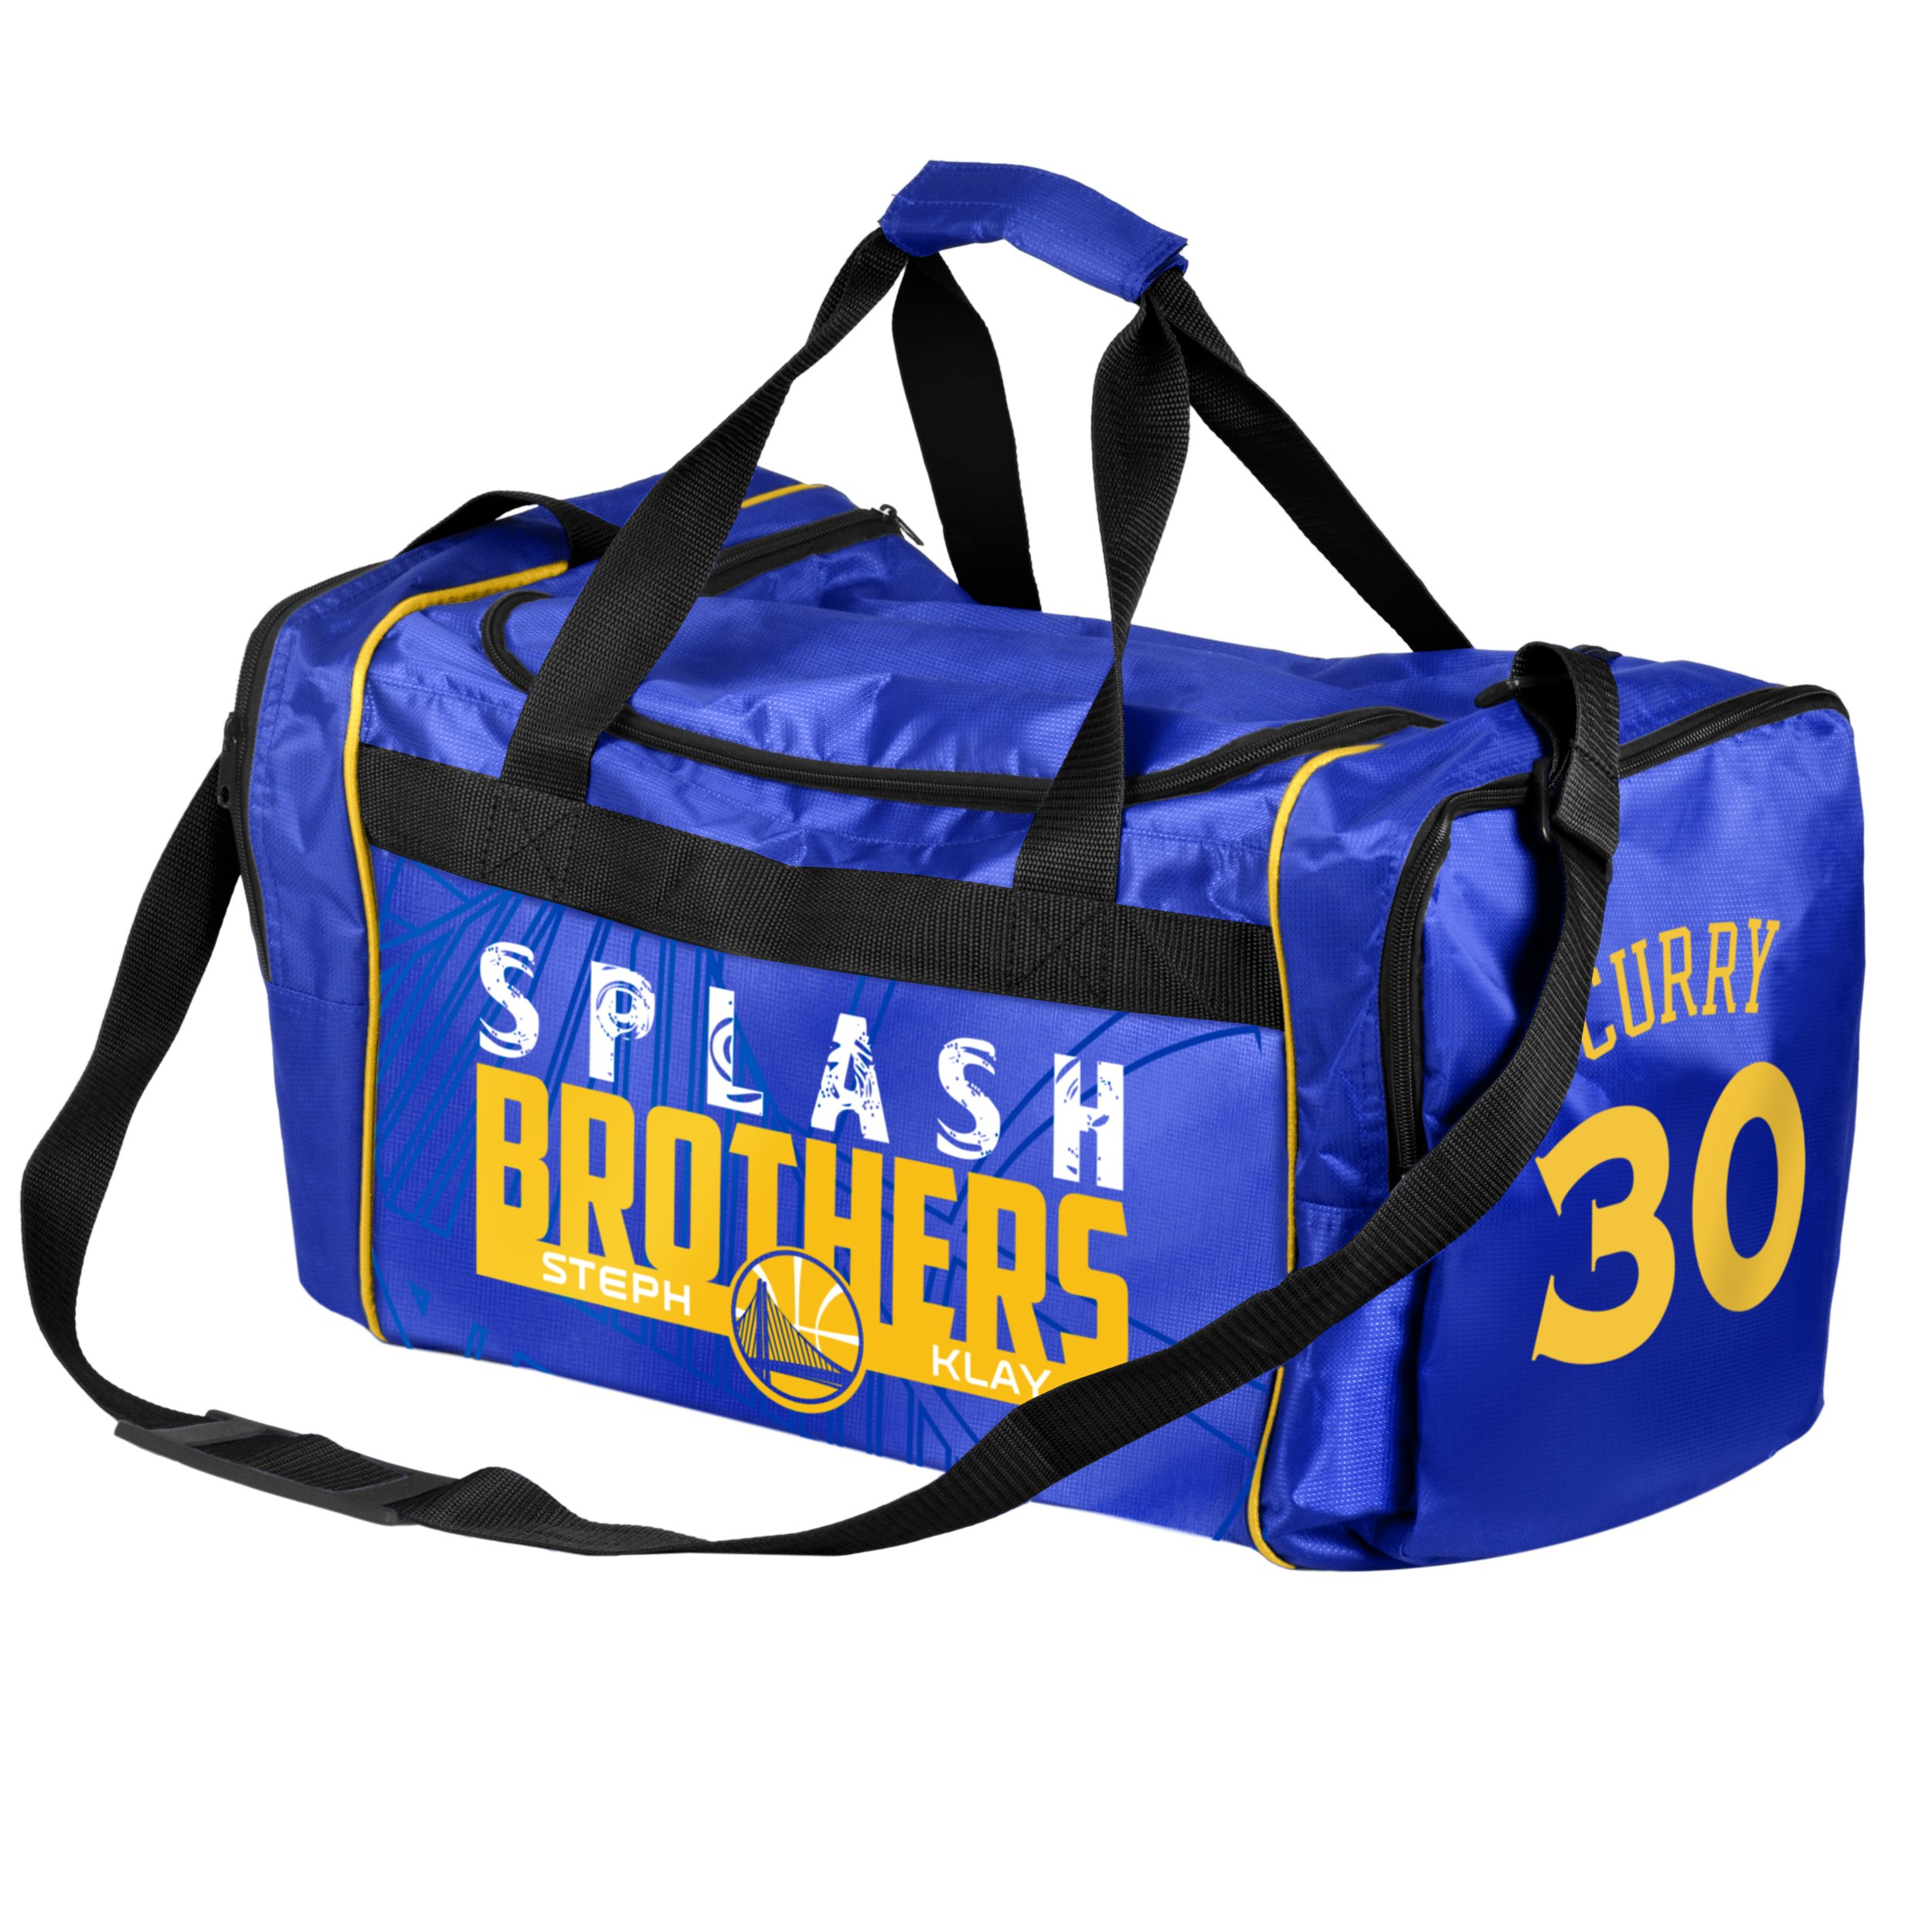 FOCO Golden State Warriors Steph Curry #30 and Klay Thompson Splash Brothers Core Duffle